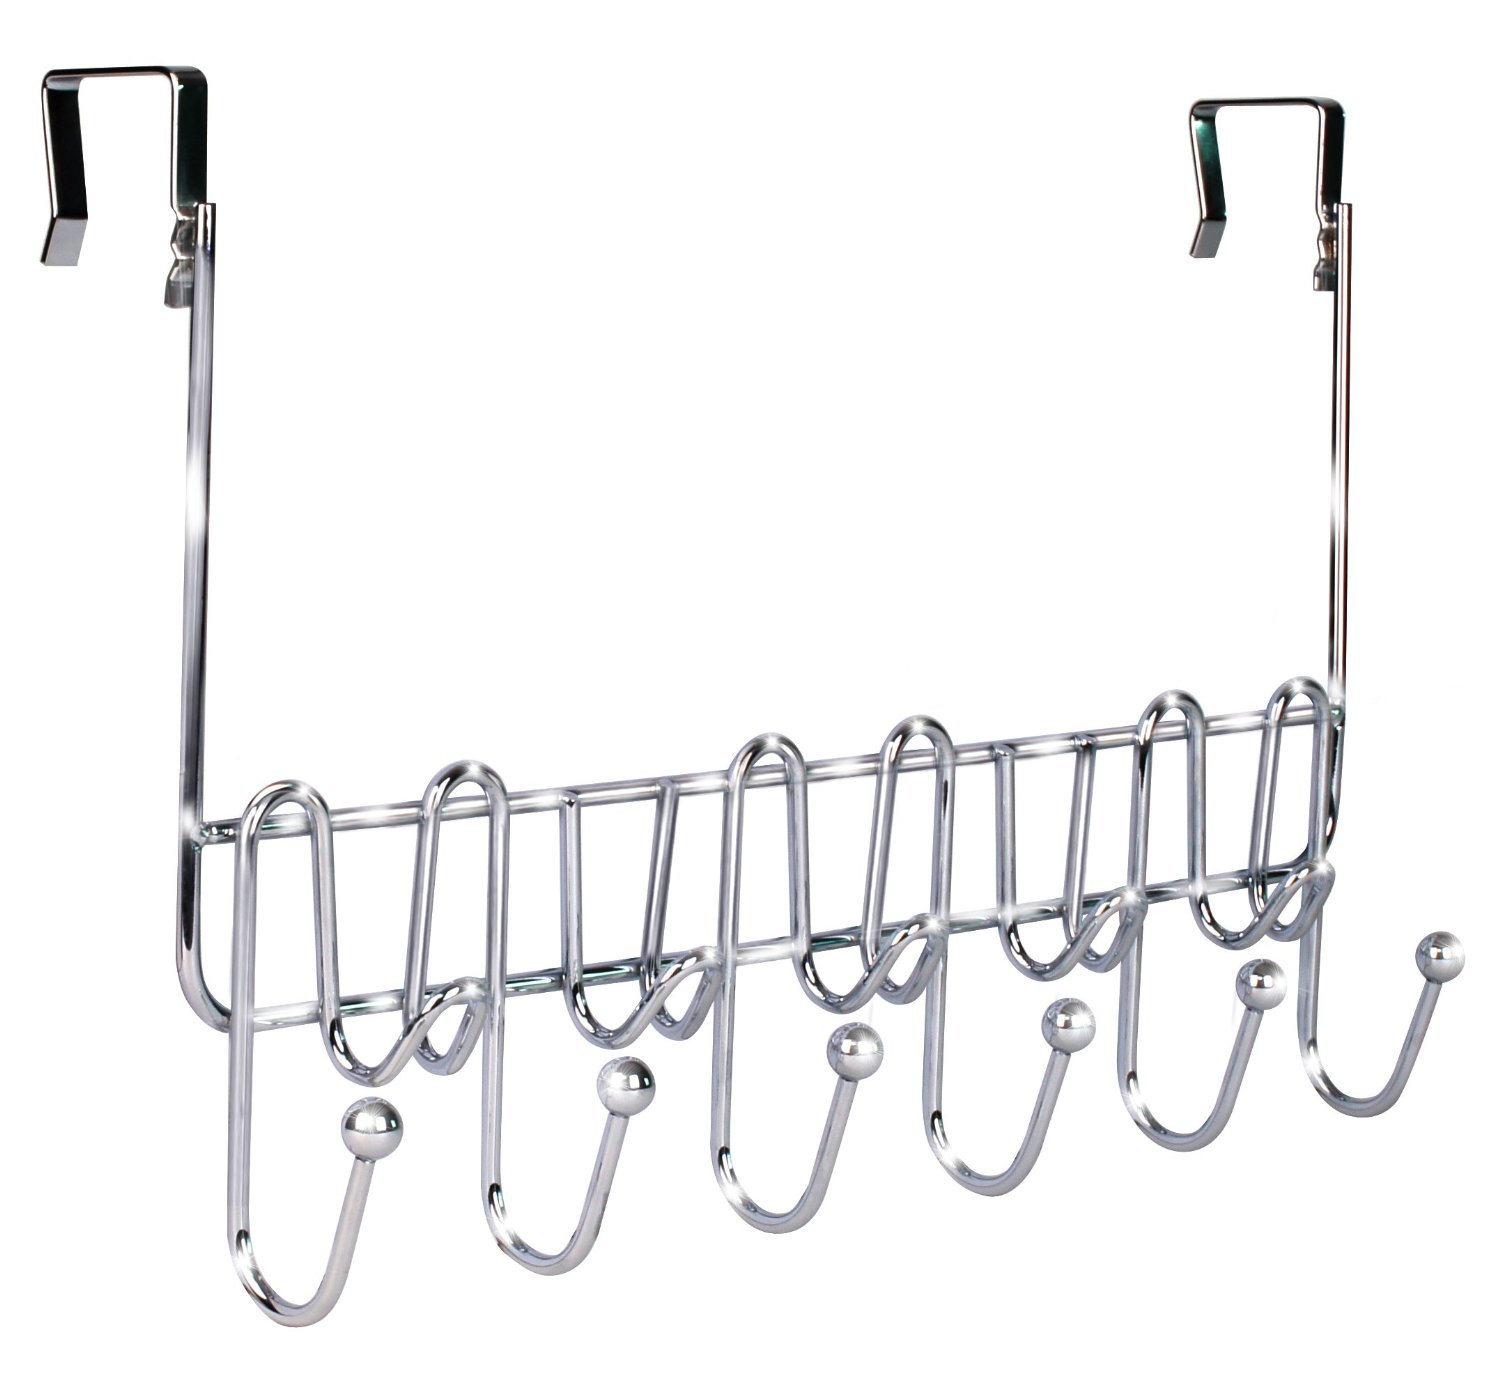 DecoBros Supreme Over The Door 11 Hook Organizer Rack, Chrome Finish Deco Brothers HK-002-1